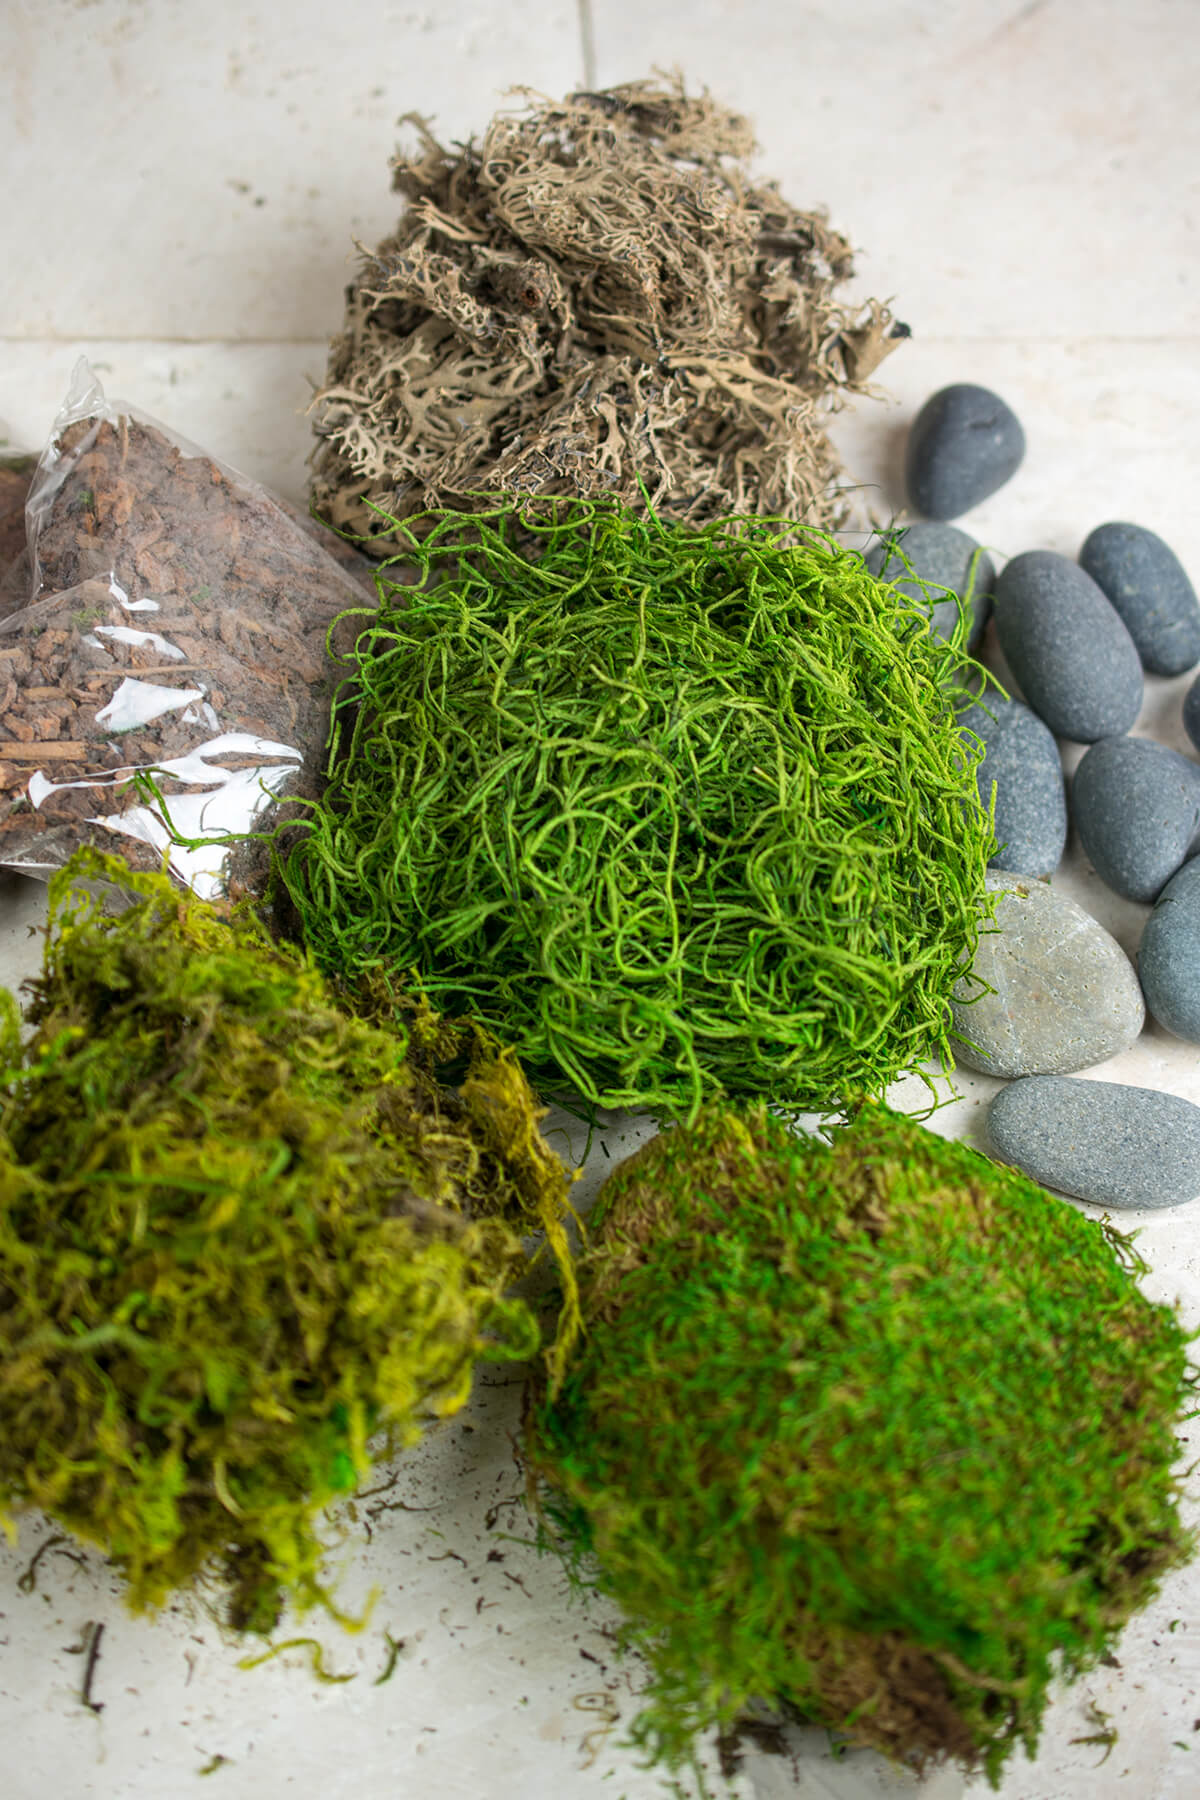 Terrarium Kit with Bark,Asst Mosses, Stones and Lichen, Forest